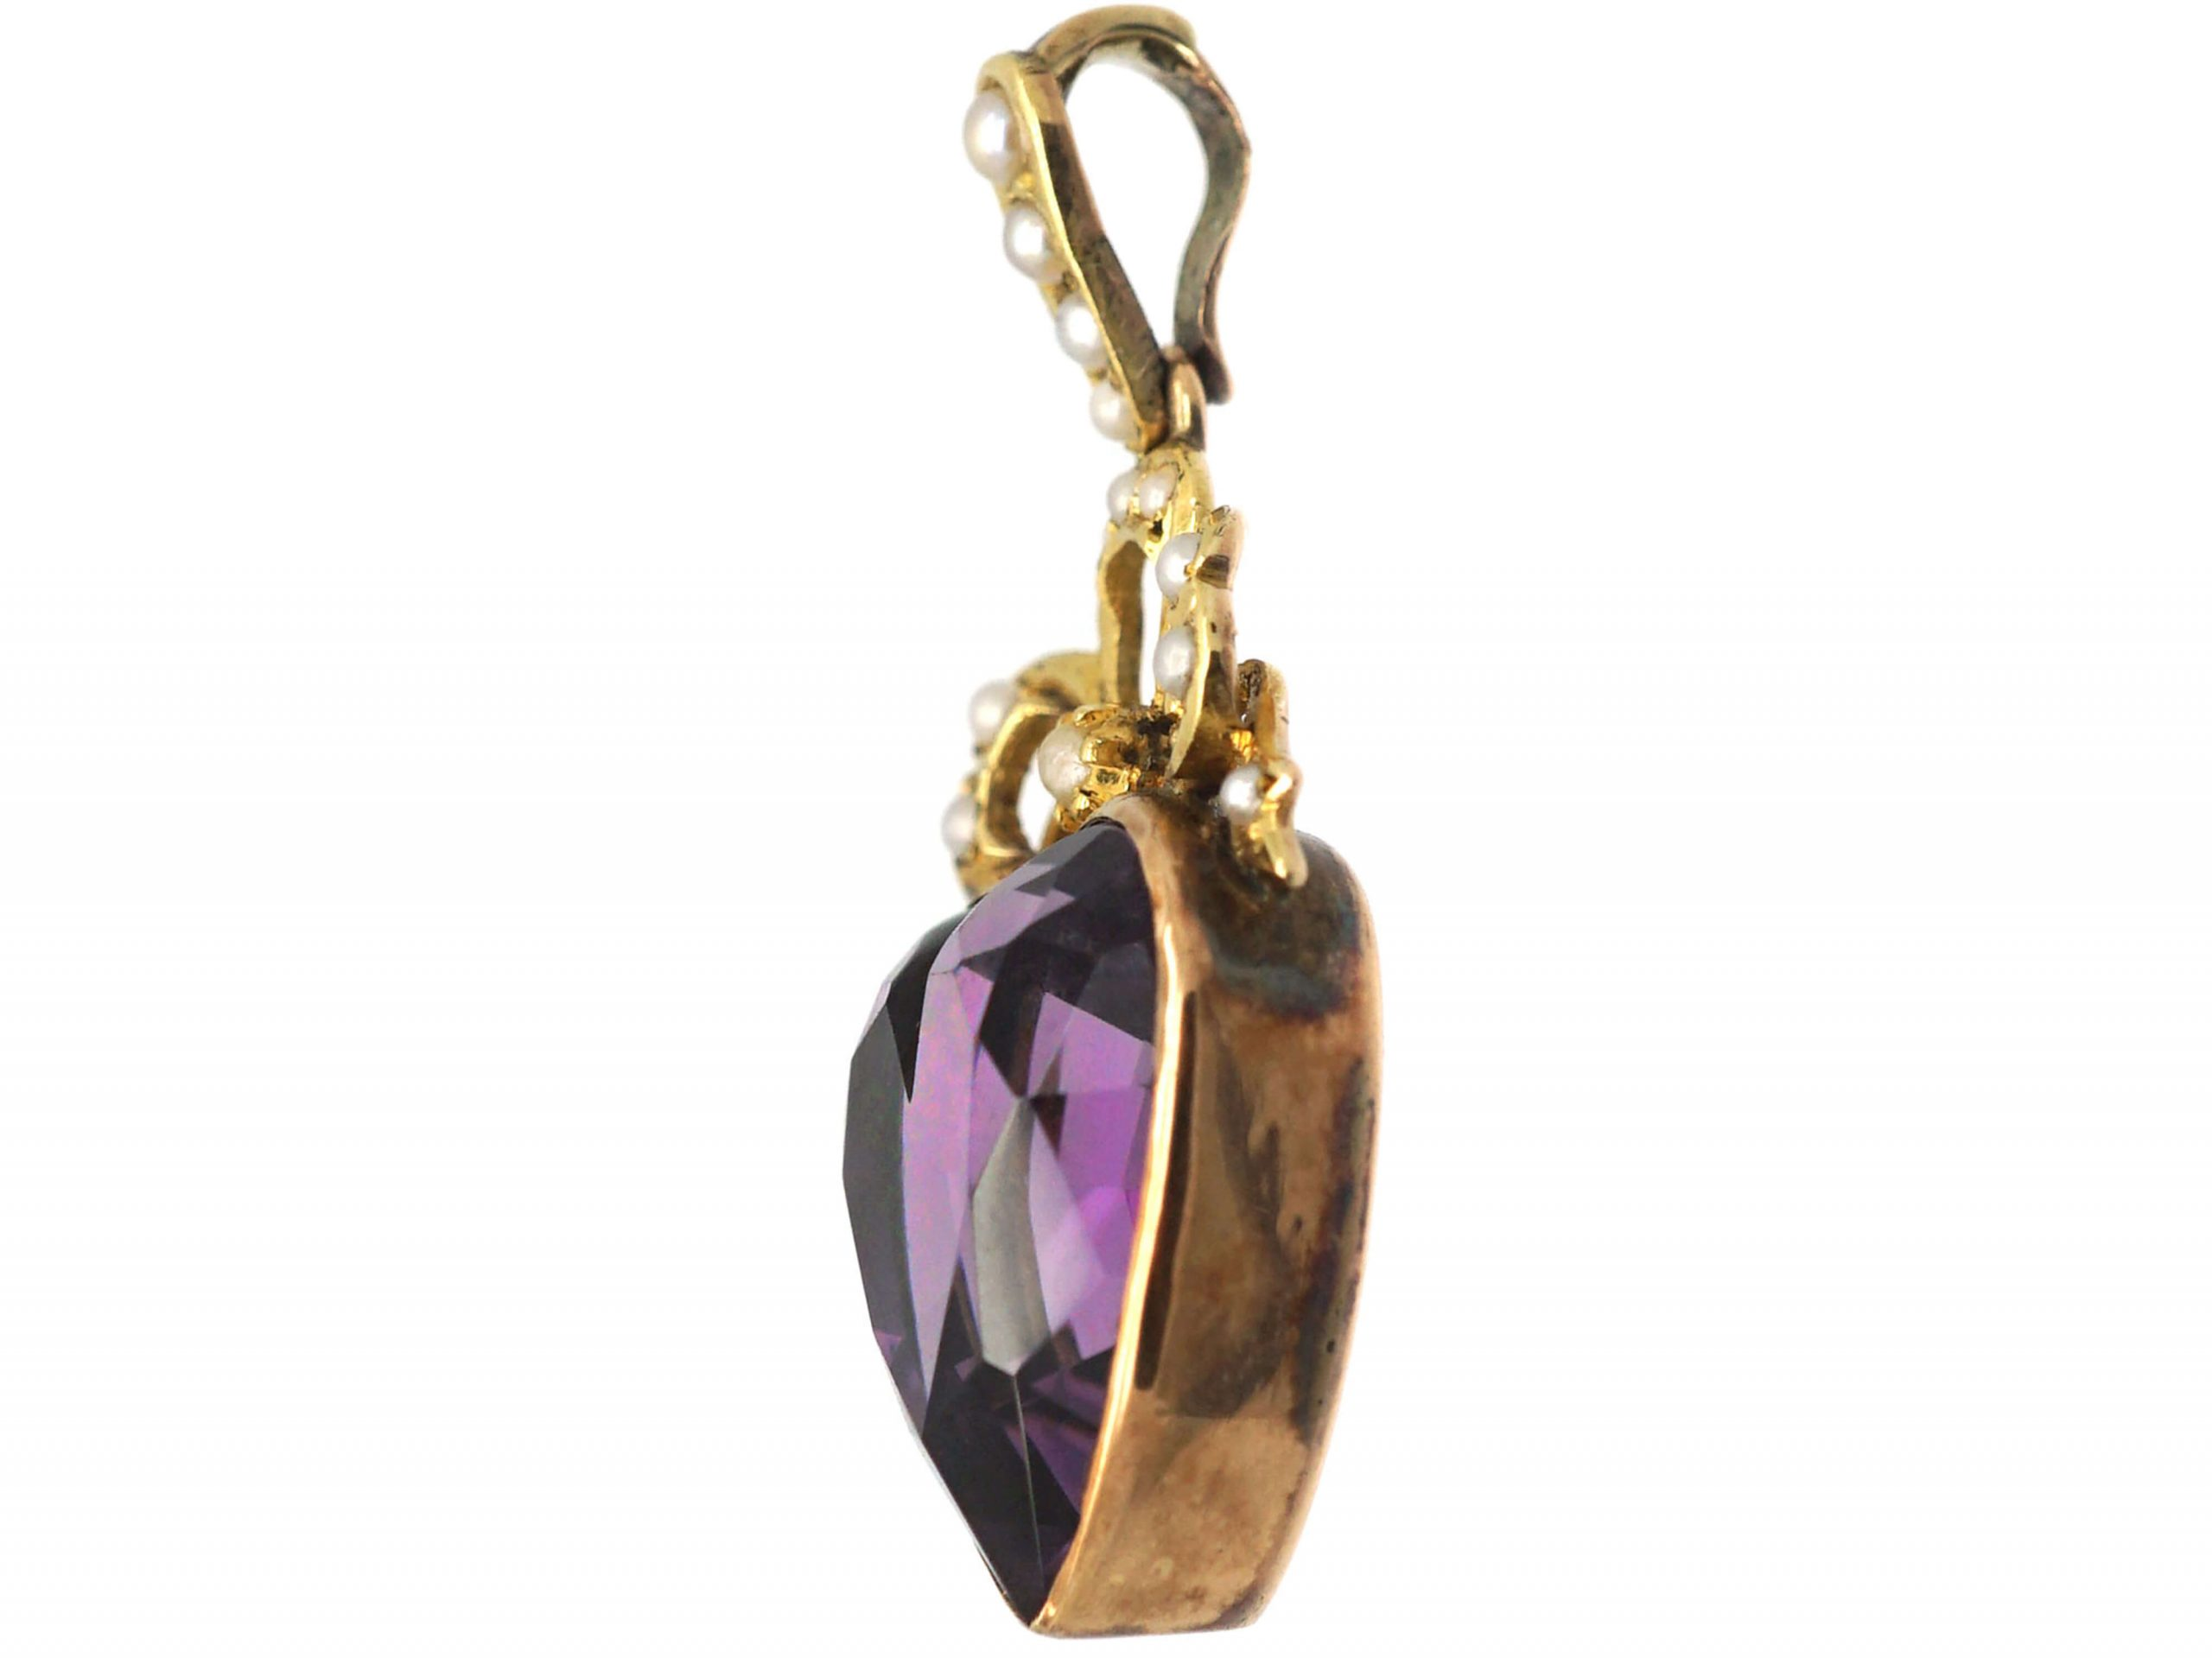 Edwardian 15ct Gold Heart & Bow Pendant set with an Amethyst & Natural Split Pearls